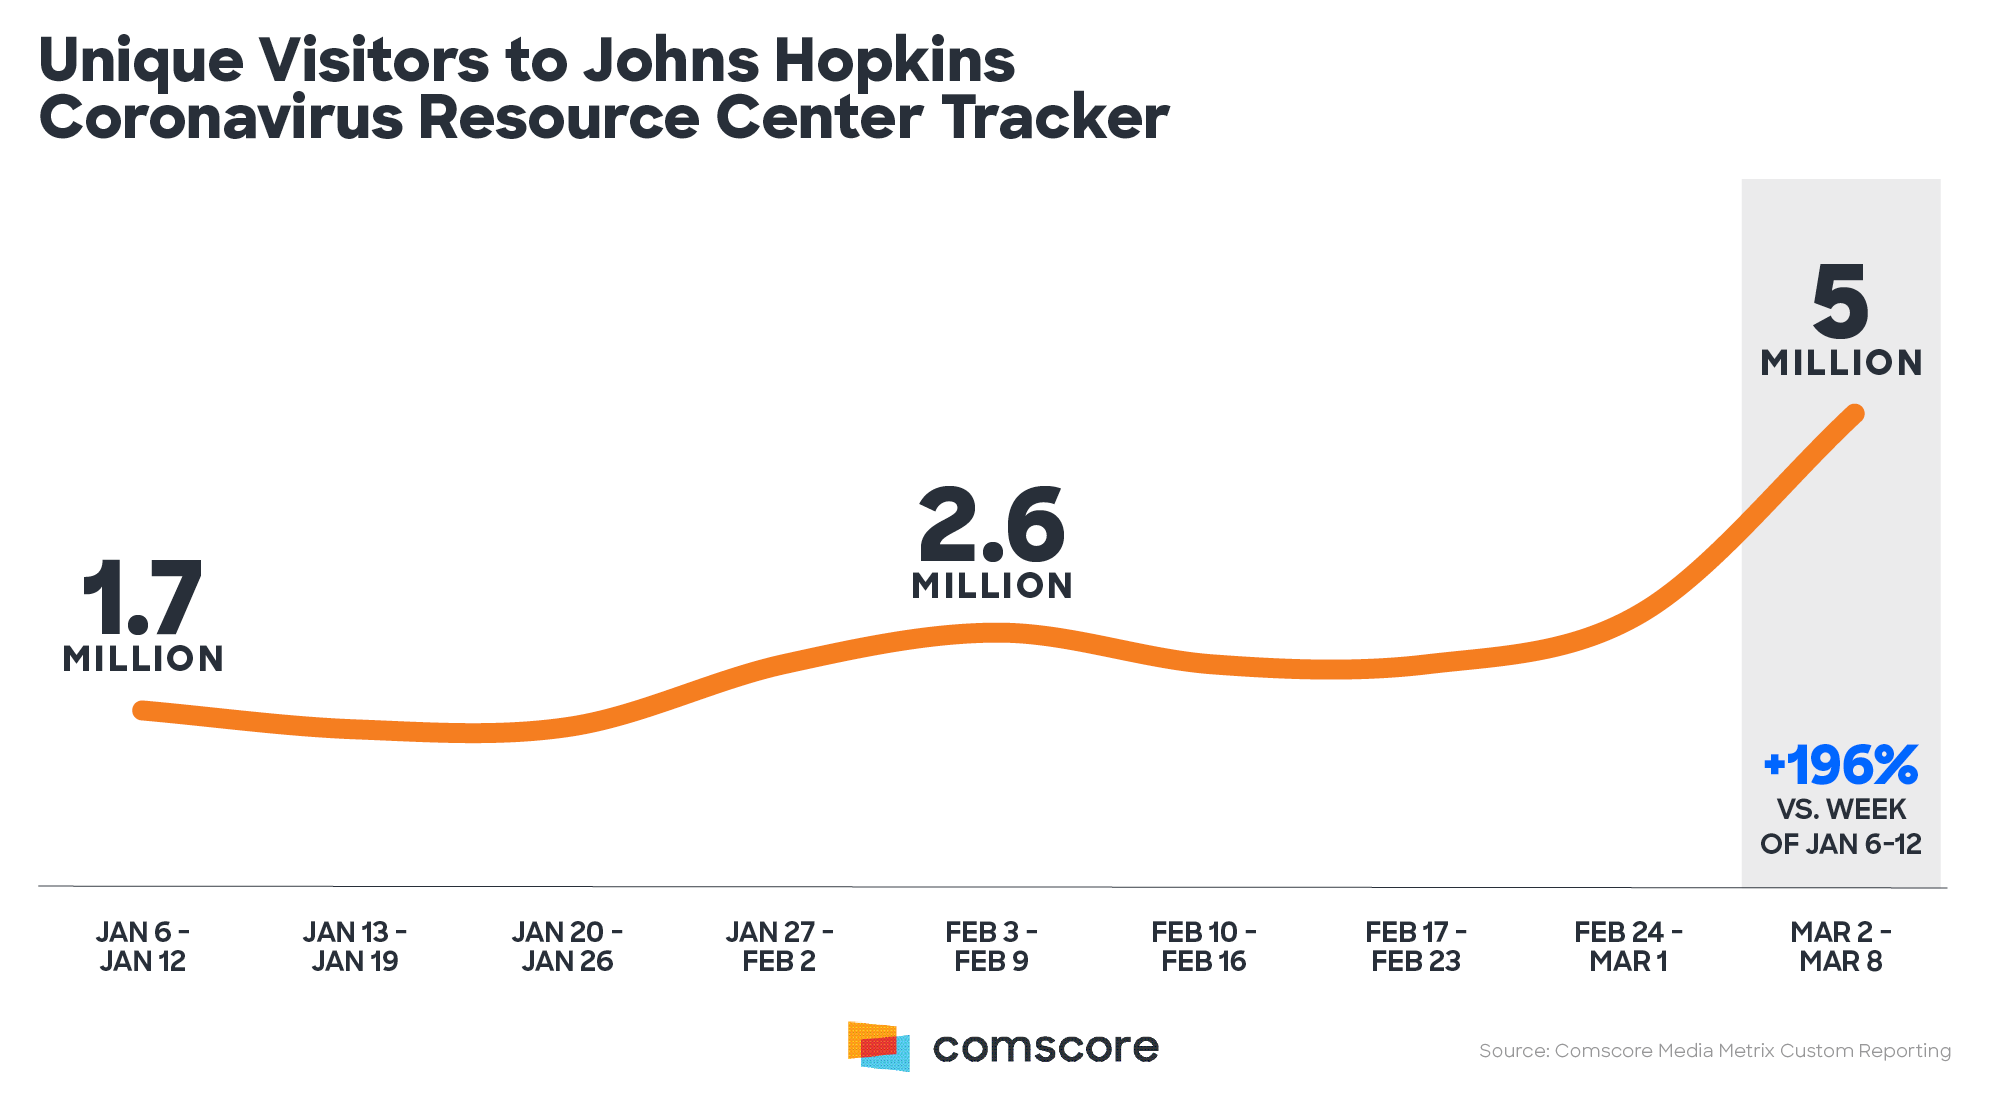 Johns Hopkins Coronavirus Resource Center Tracker – Unique Visitors